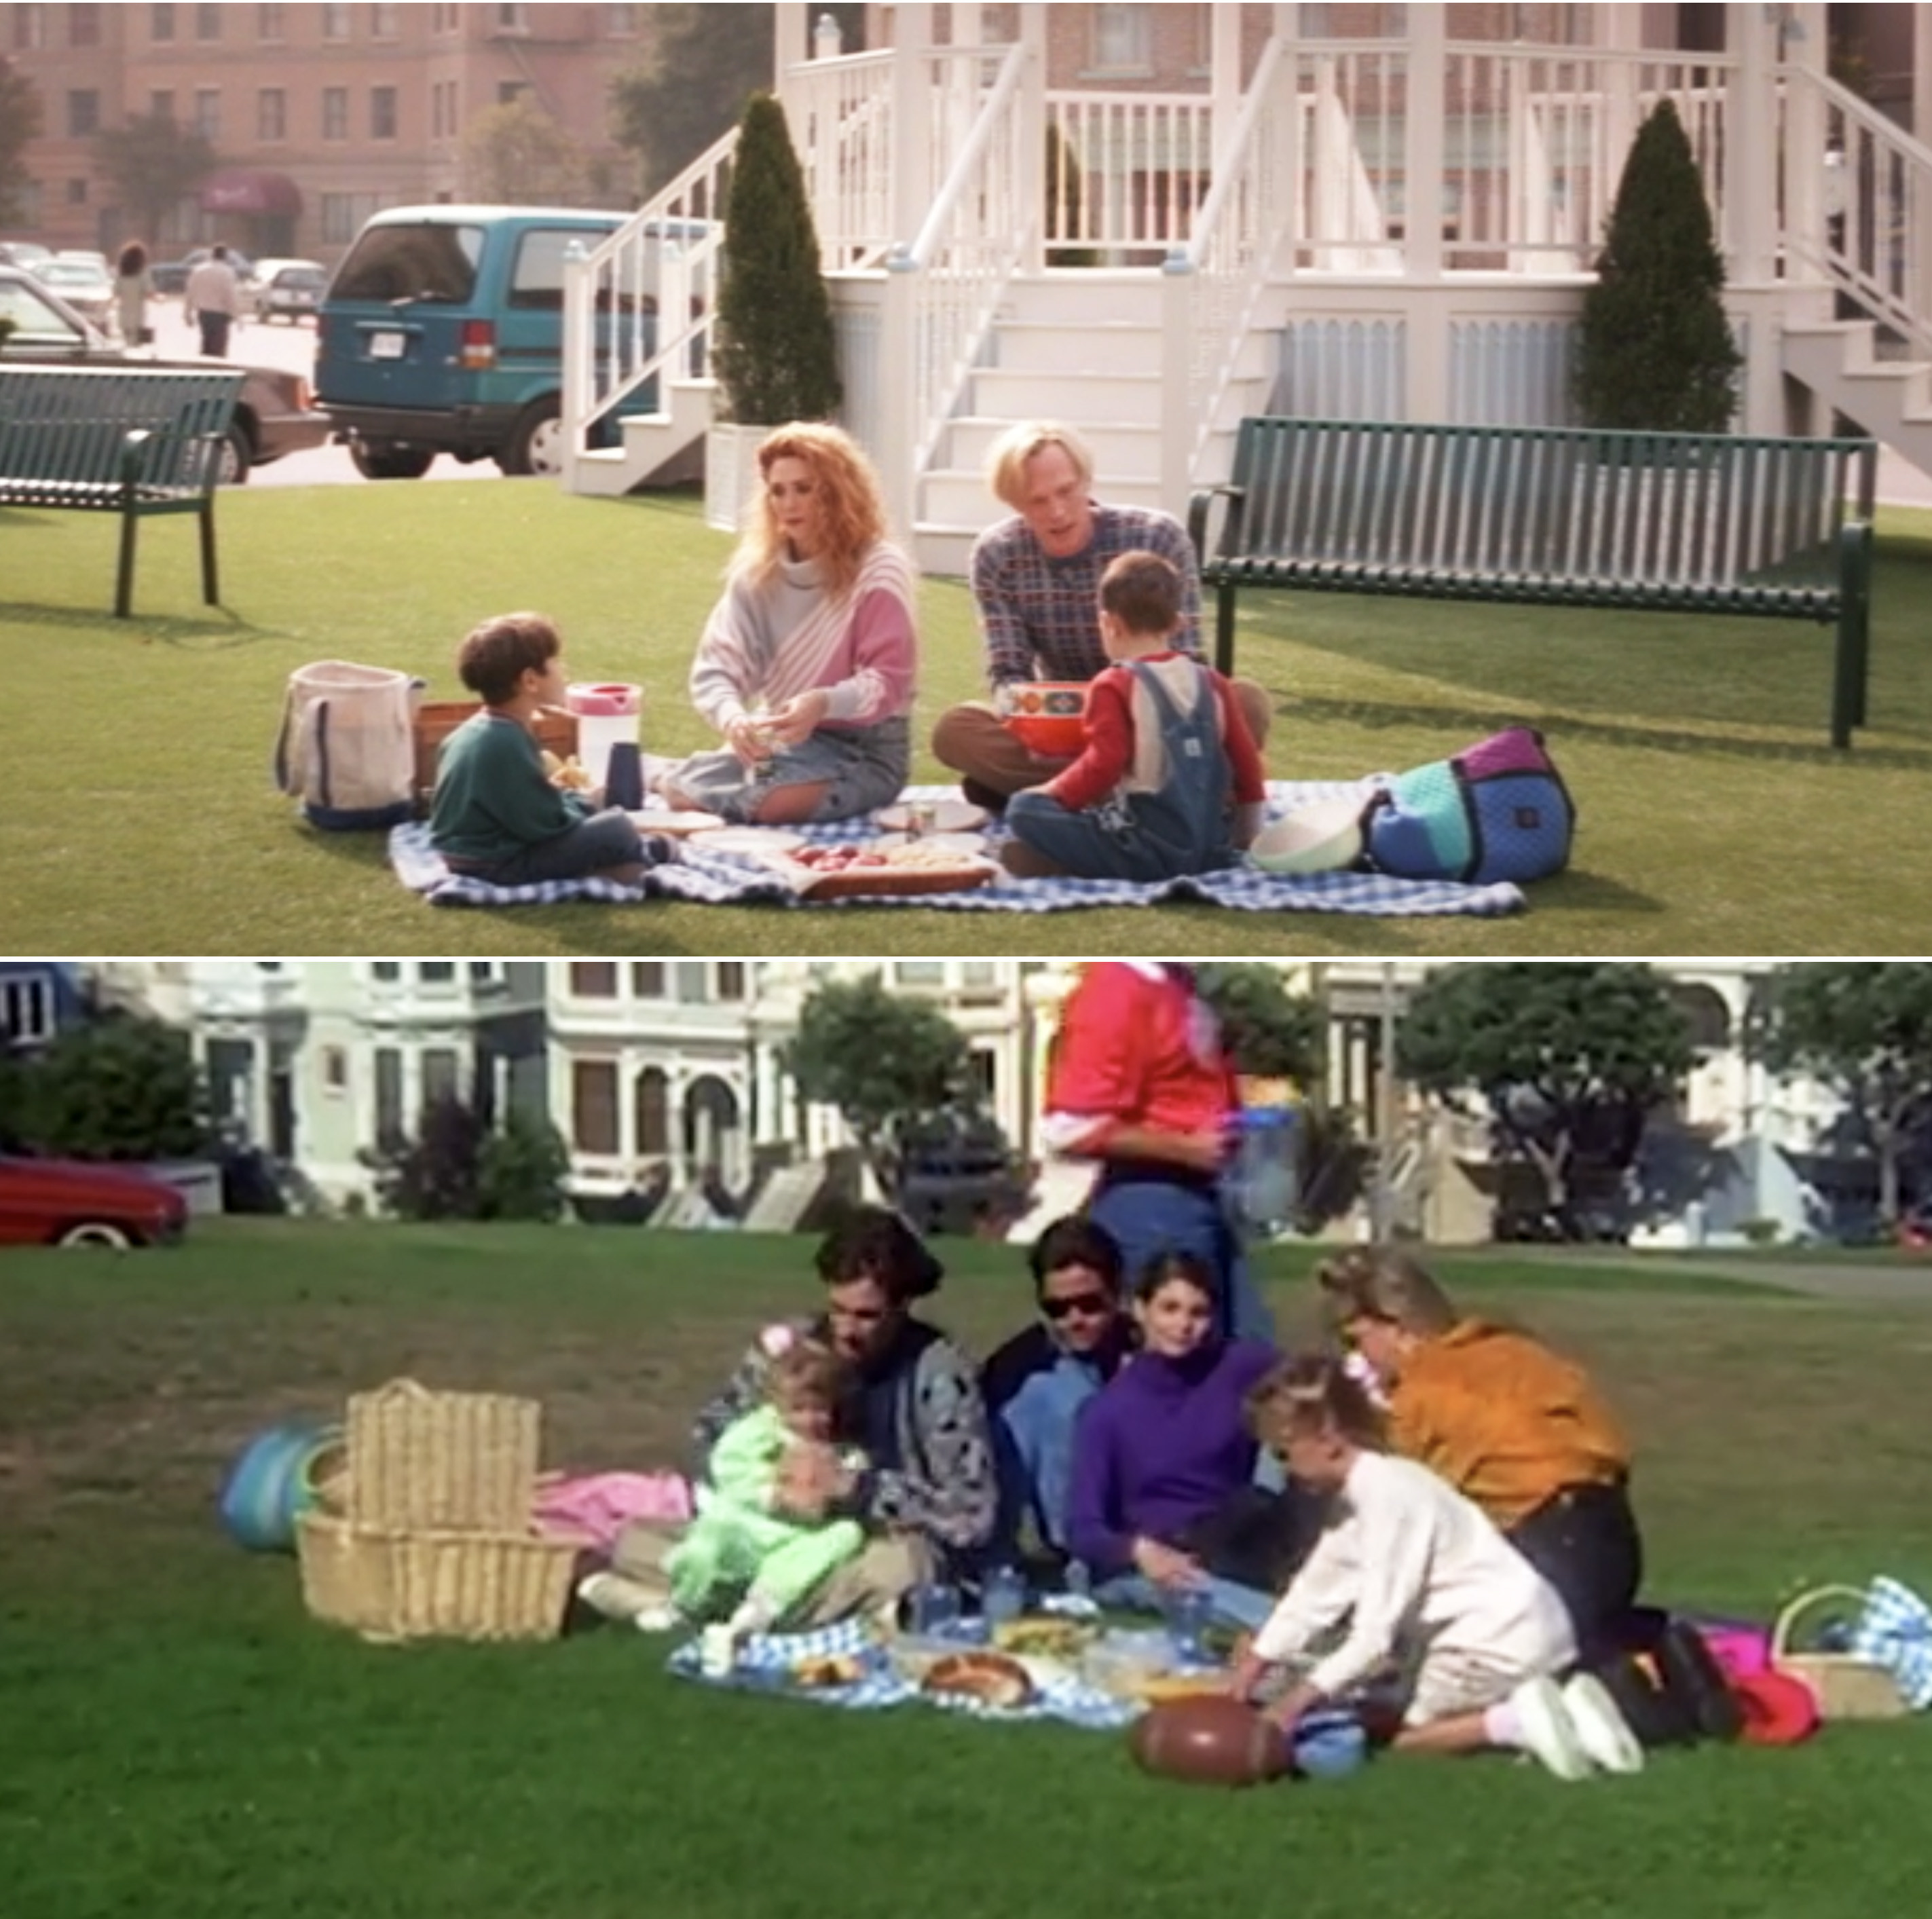 Wanda, Vision, Billy, and Tommy having a picnic vs. The Tanners having a picnic on Full House